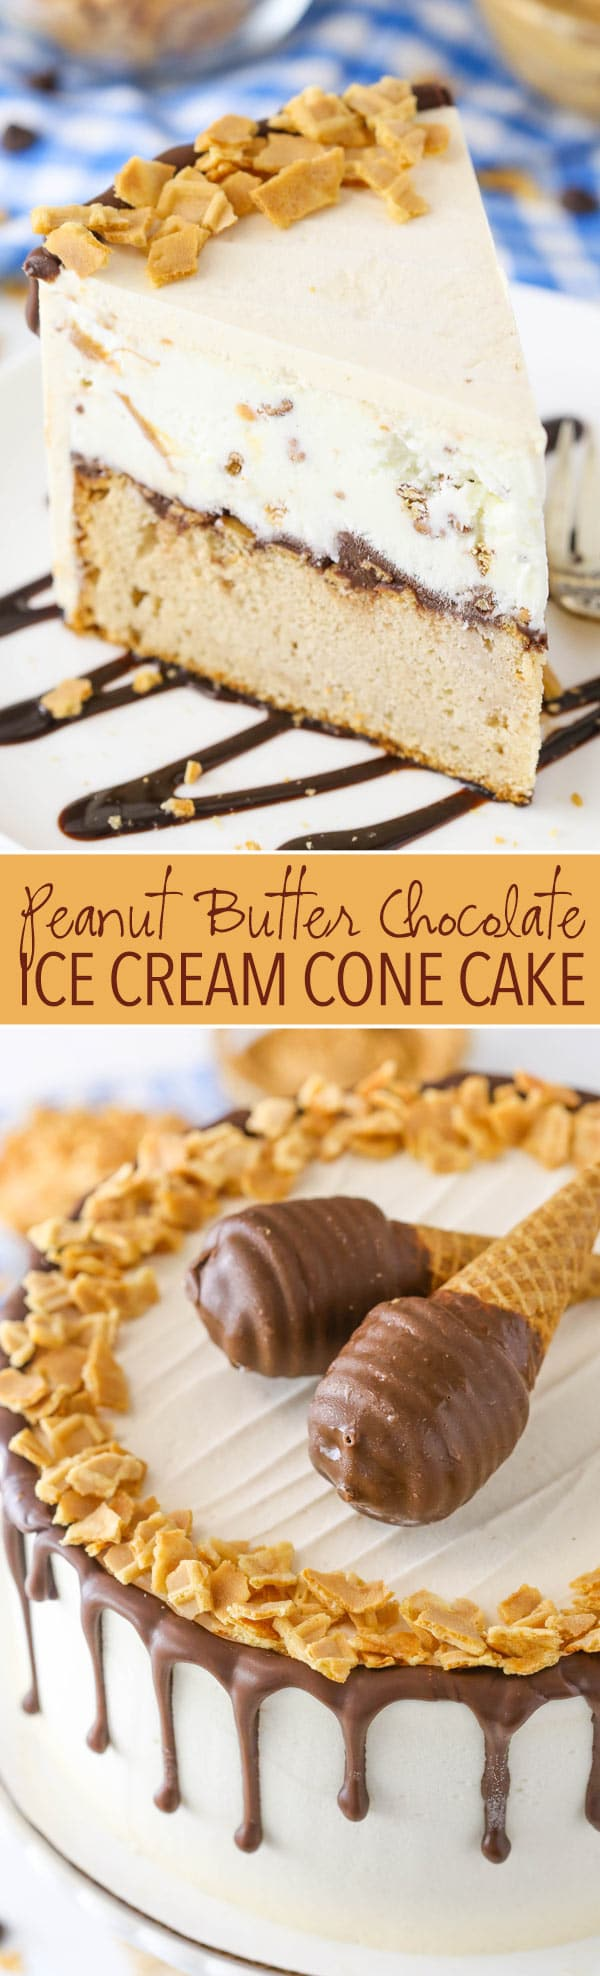 Peanut Butter Chocolate Ice Cream Cone Cake - peanut butter cake and vanilla ice cream studded with chocolate covered cone pieces and peanut butter!